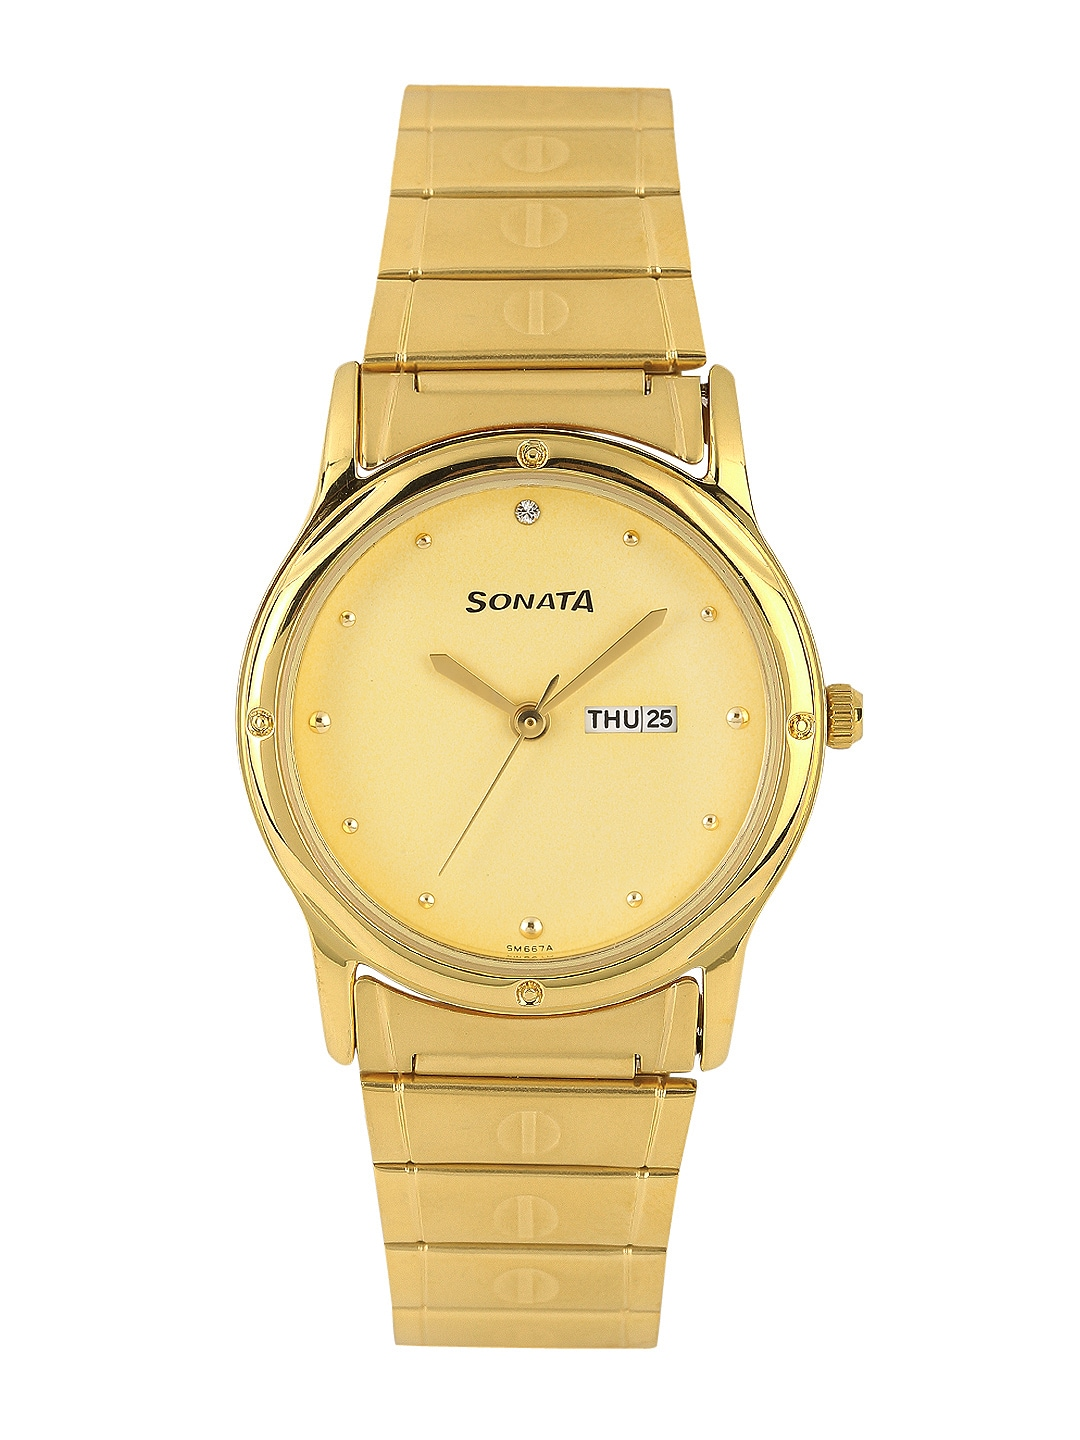 Sonata Men Gold-Toned Dial Watch NC7023YM09